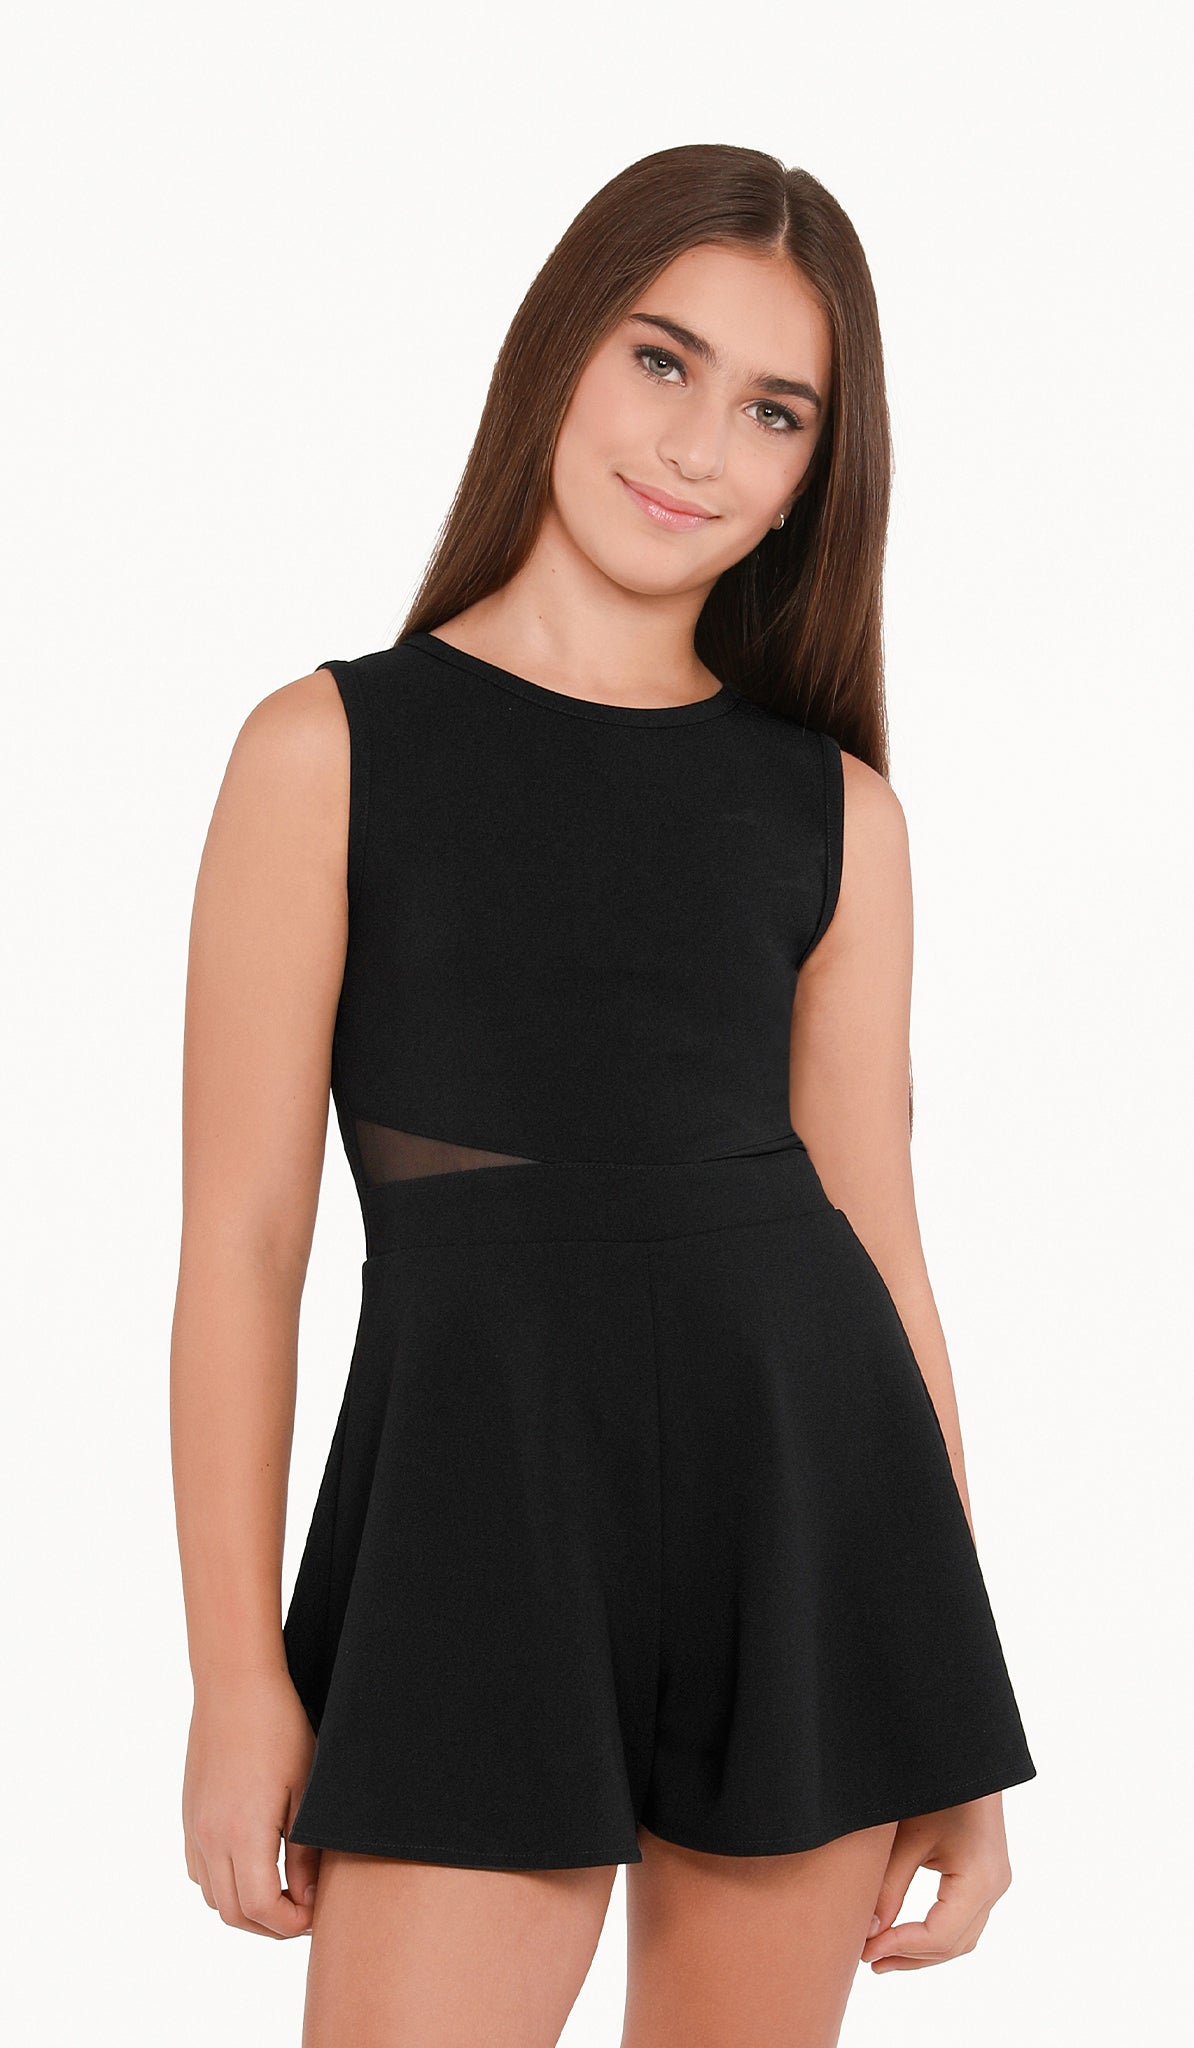 The Sally Miller Serena Romper - Black stretch textured knit romper with illusion mesh waist inserts and zipper at back